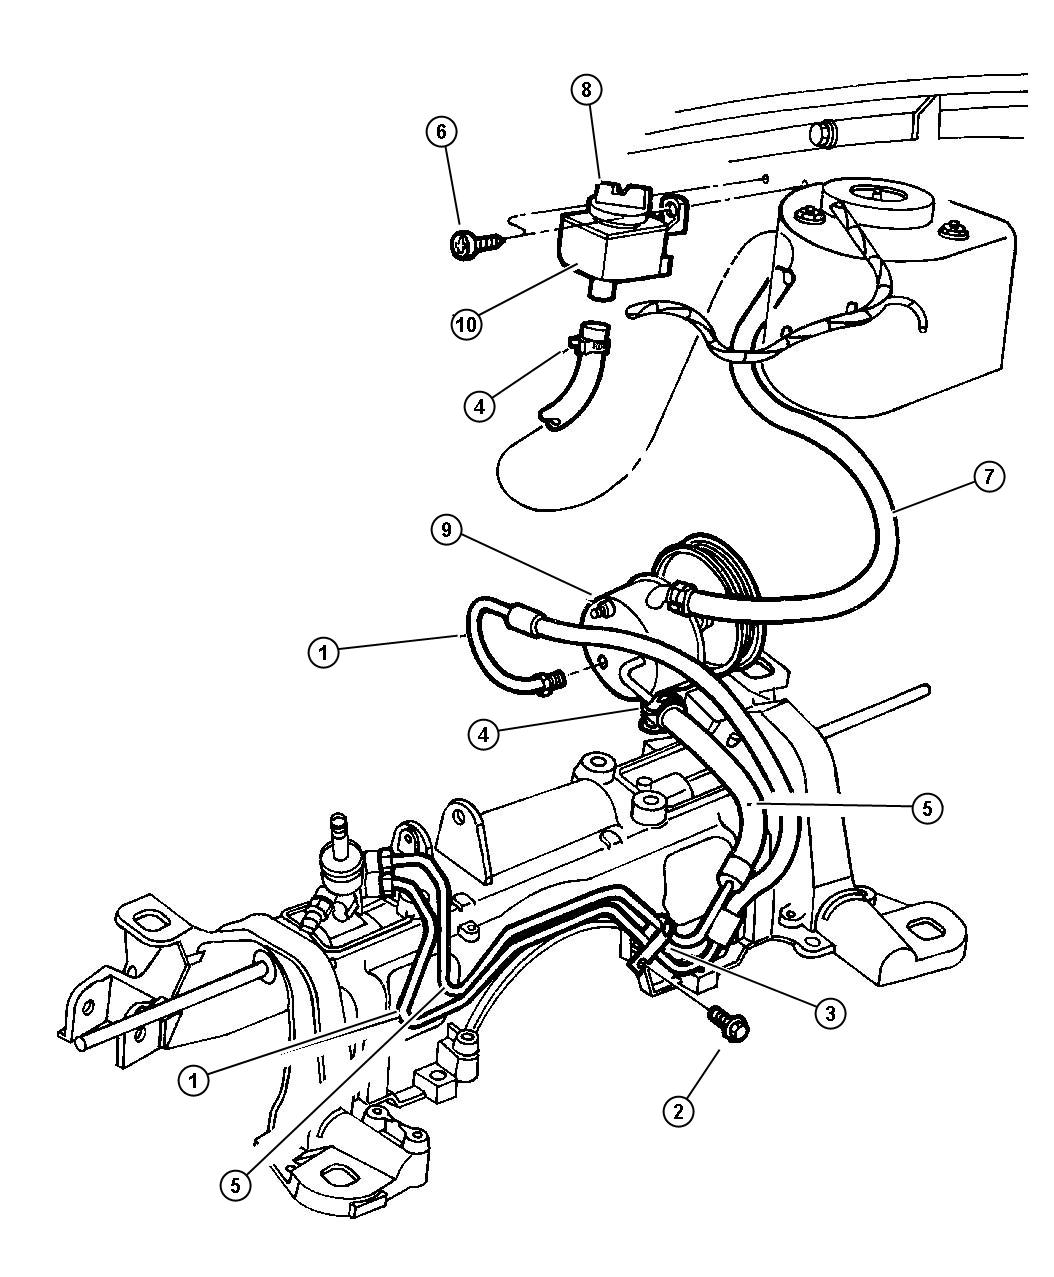 Service manual [How To Change A Powersteering Hose 1994